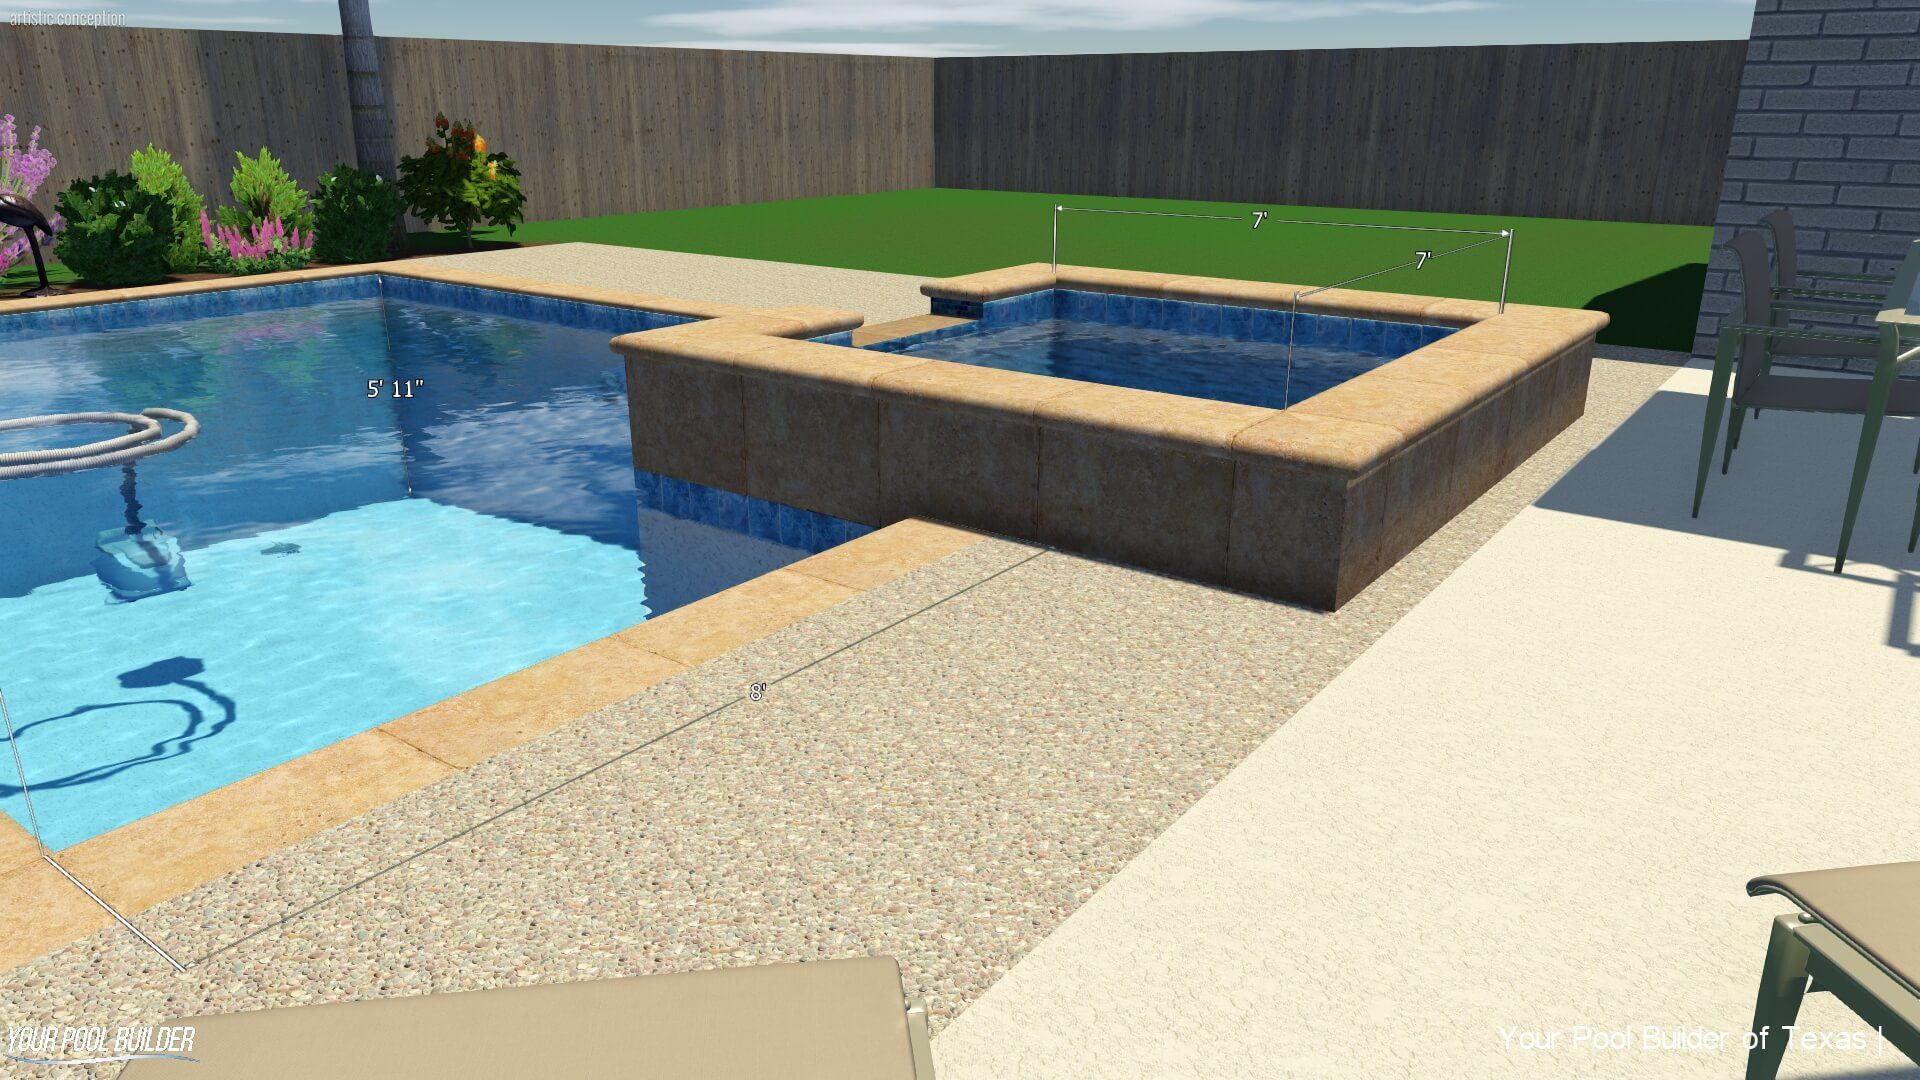 inground swimming pool prices cost with a spa (2) | Pool Design ...